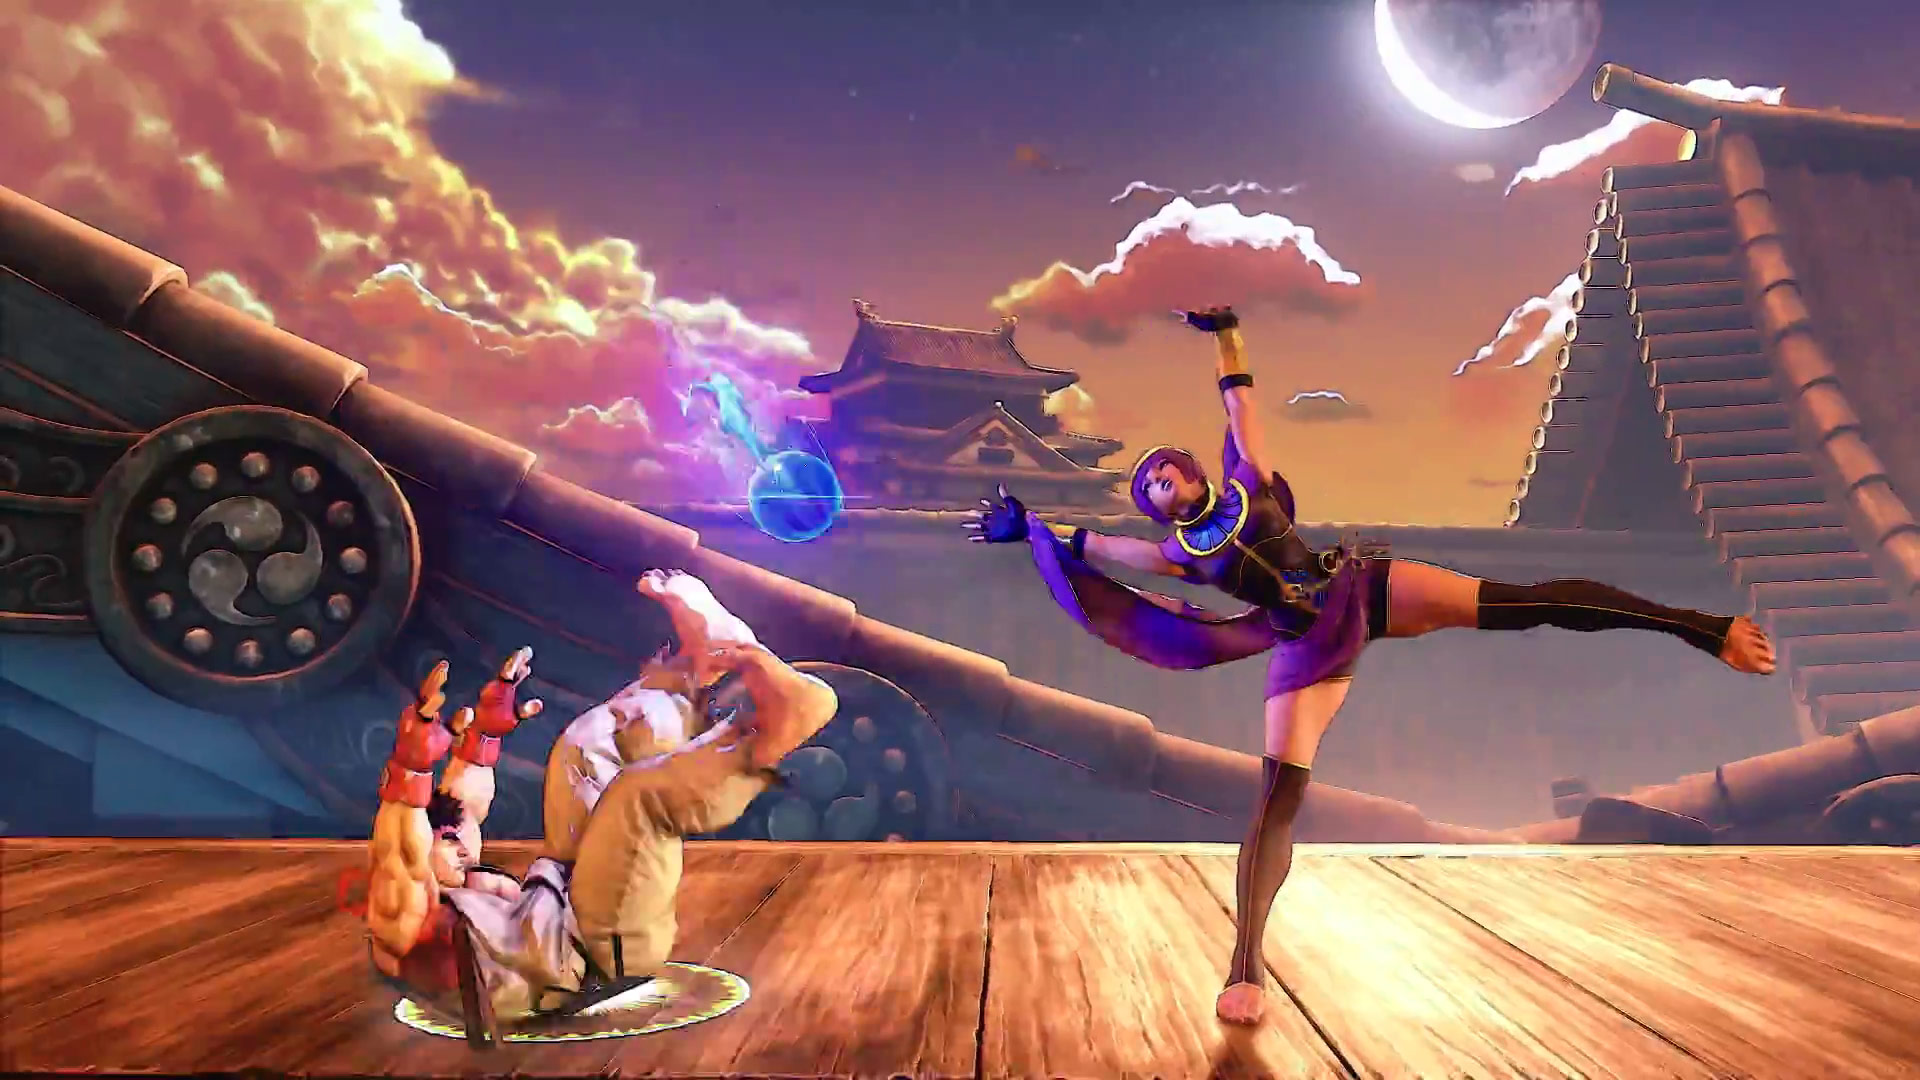 Menat announced for Street Fighter 5 reveal images 4 out of 6 image gallery